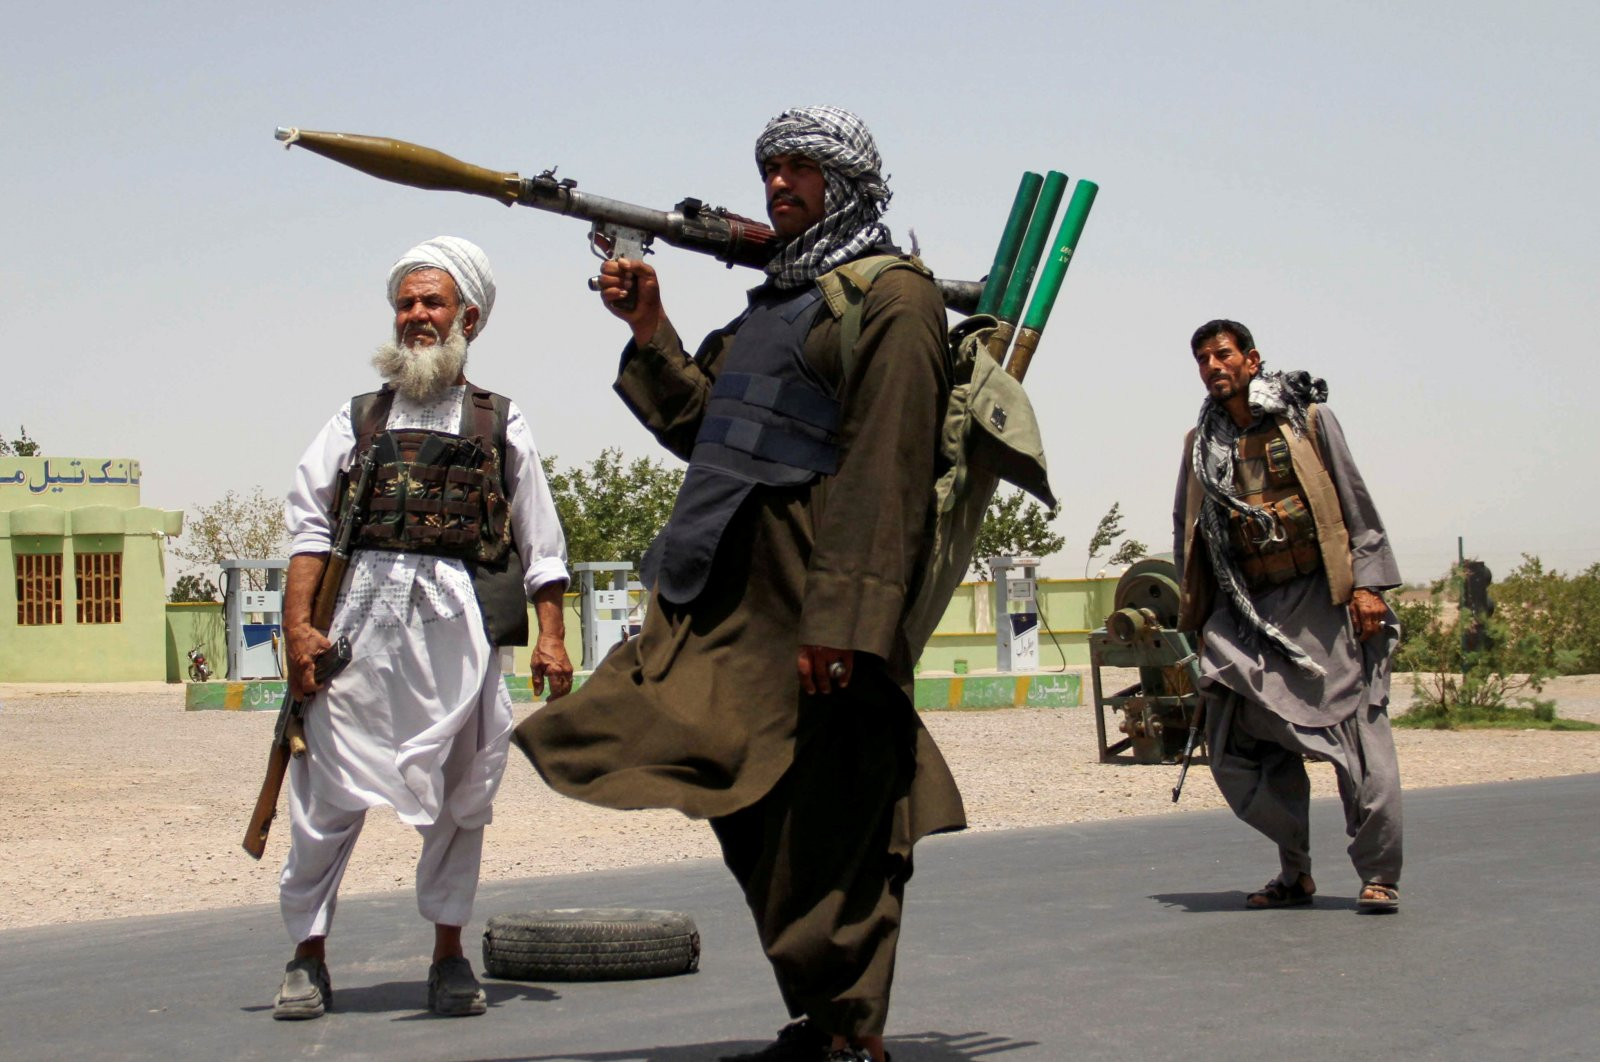 Former Mujahideen hold weapons to support Afghan forces in their fight against the Taliban on the outskirts of Herat province, Afghanistan, July 10, 2021. (Reuters Photo)